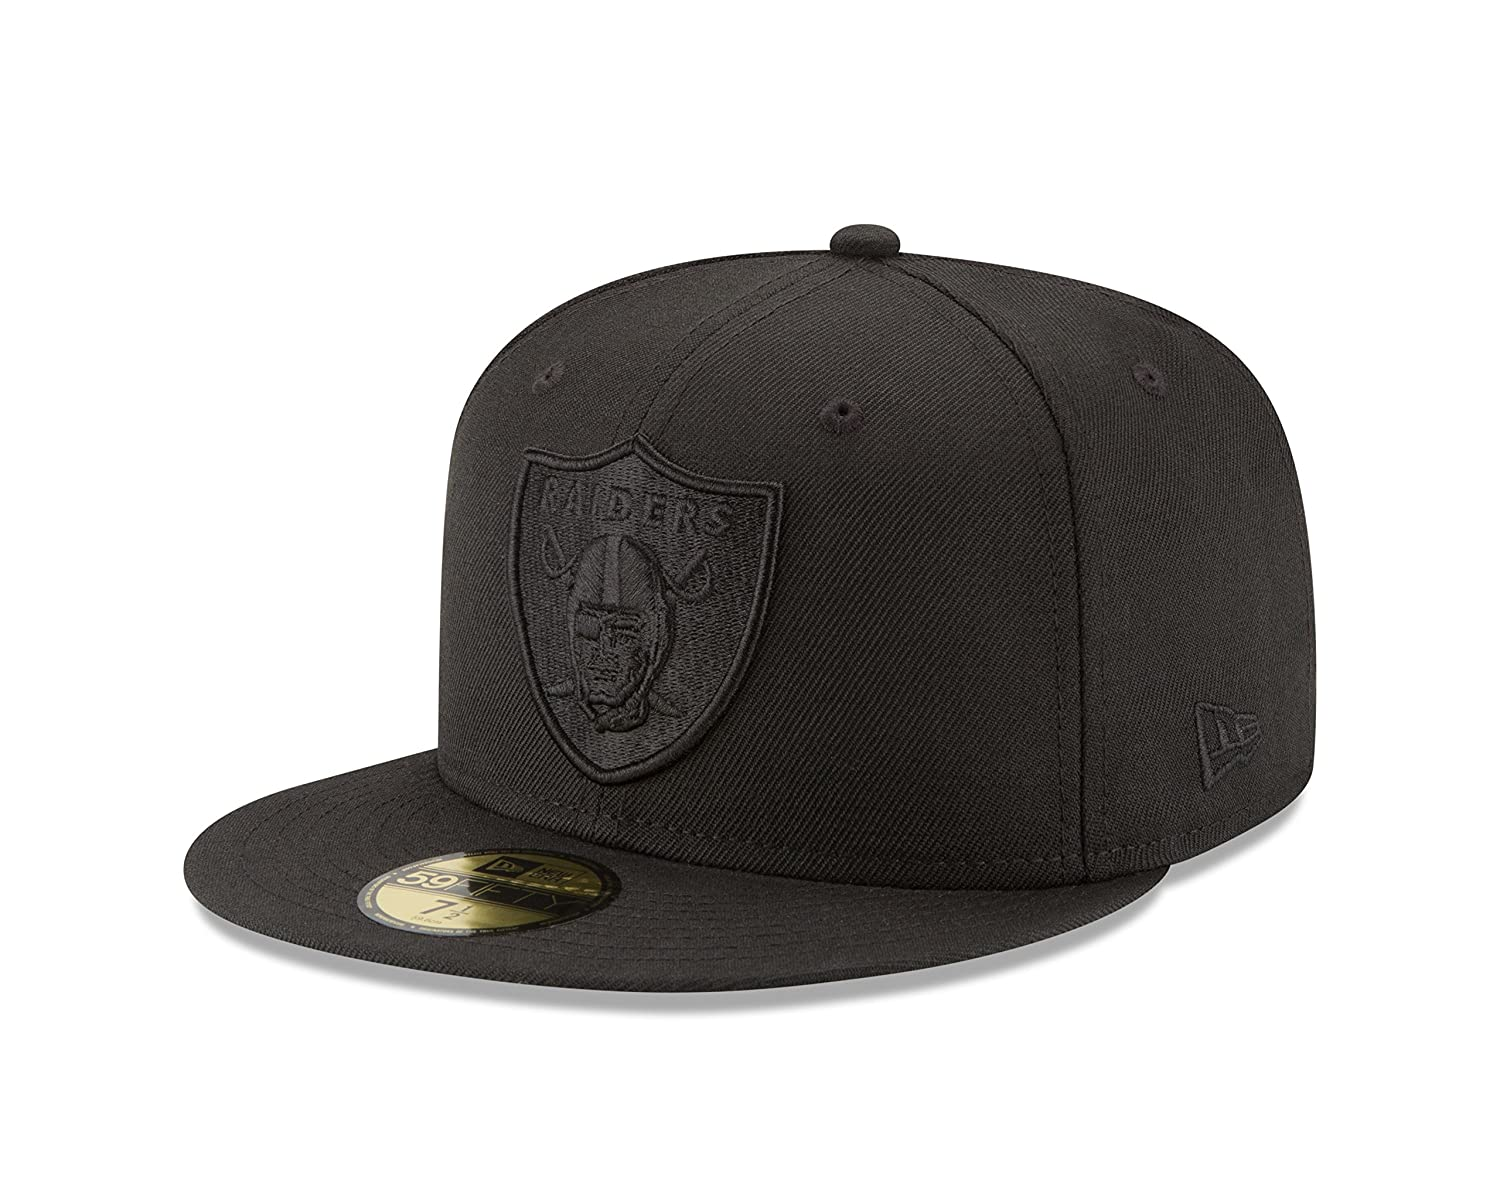 New Era NFL Men's Black On Black 59Fifty Fitted Cap